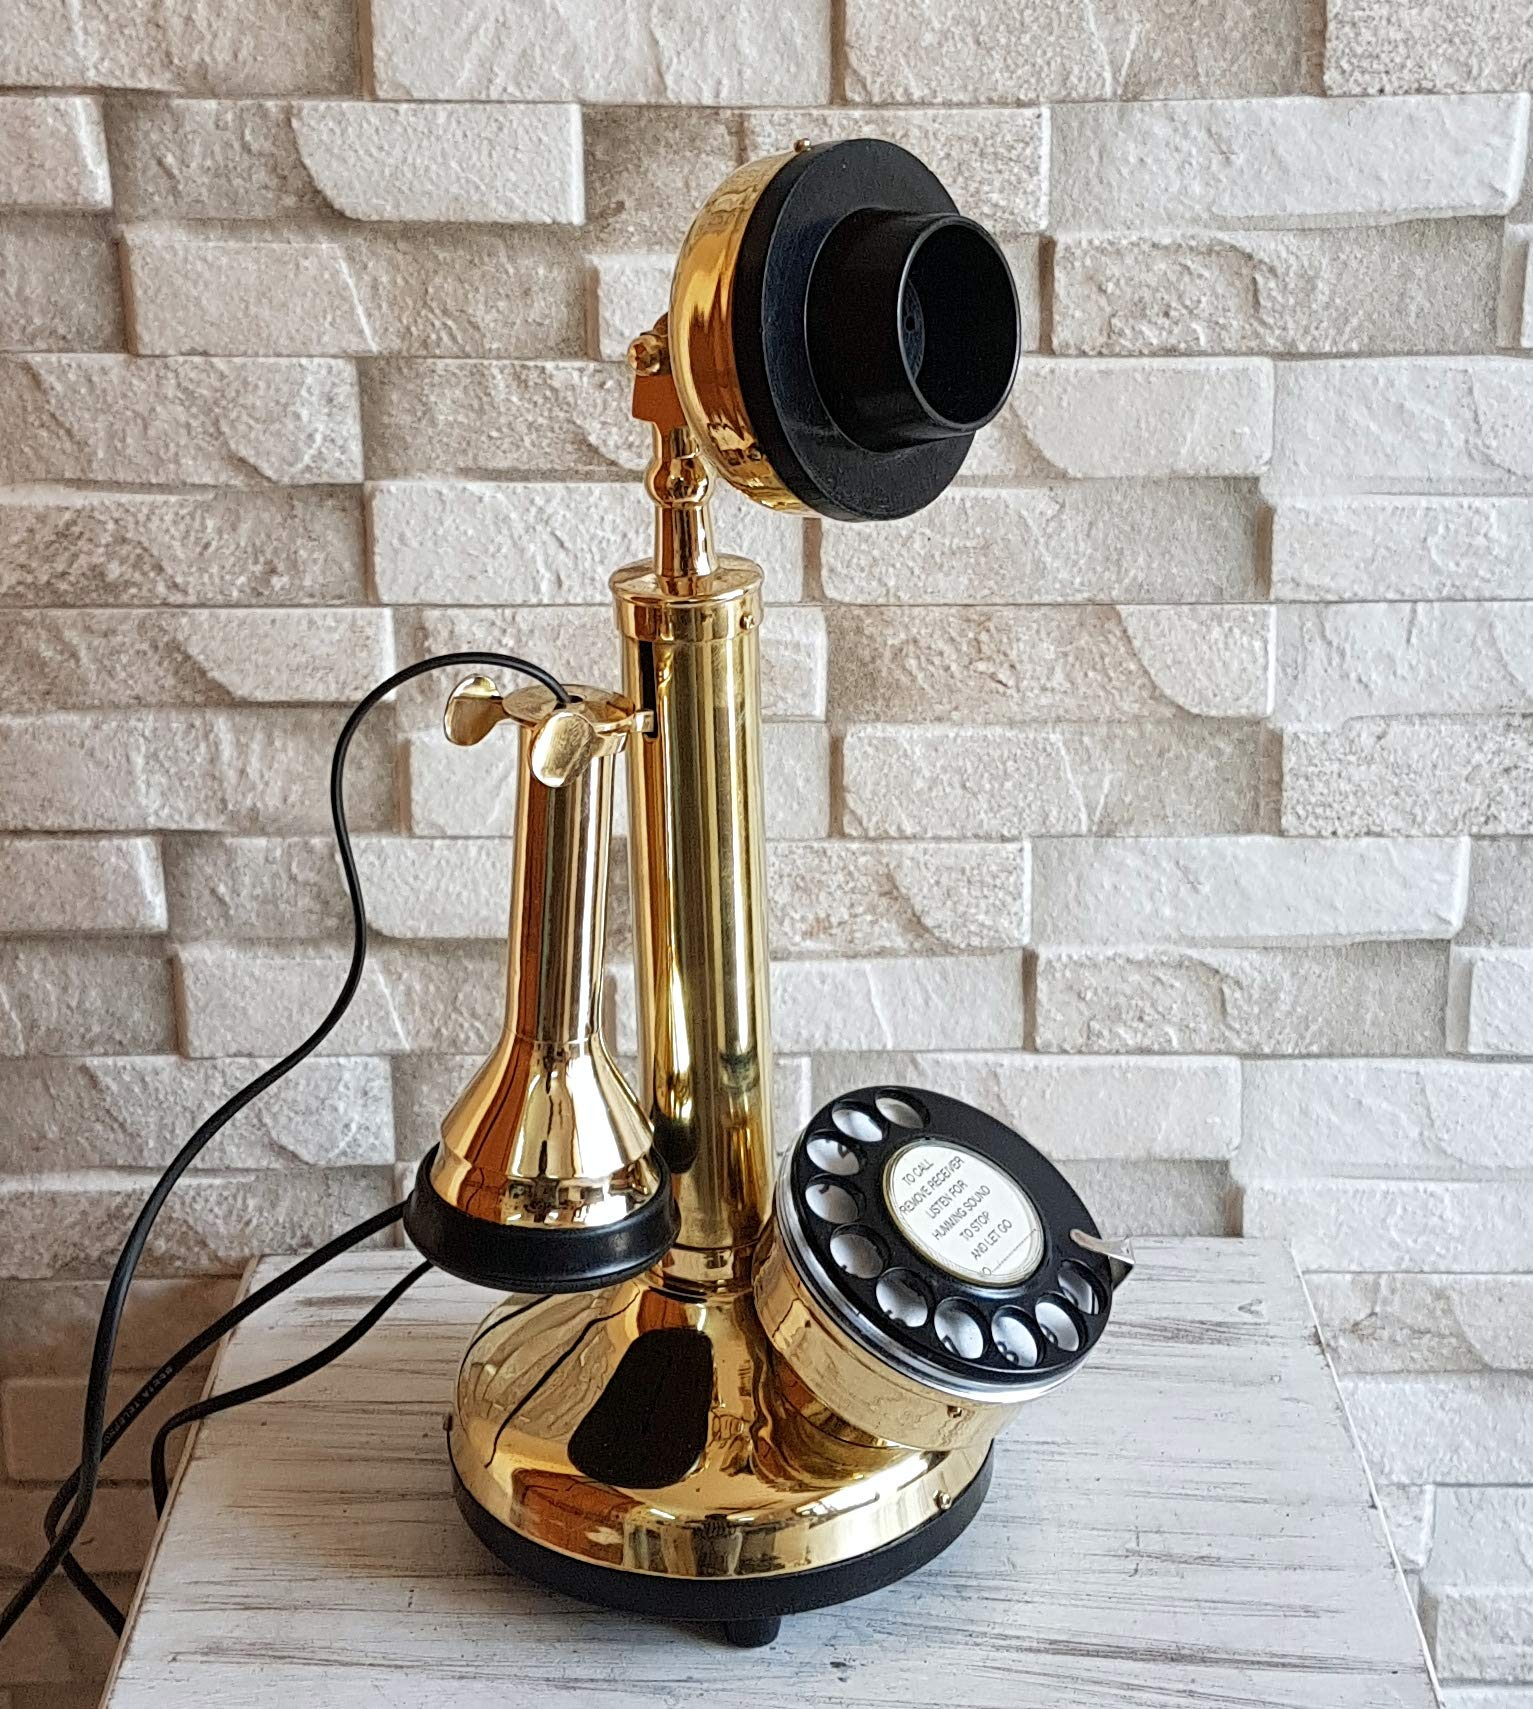 Decor n style store Have one to sell? Sell now - Have one to sell? Details about Antique Reproduction Shinny Brass Working Candlestick Telephone Rotary Dial by Decor n style store